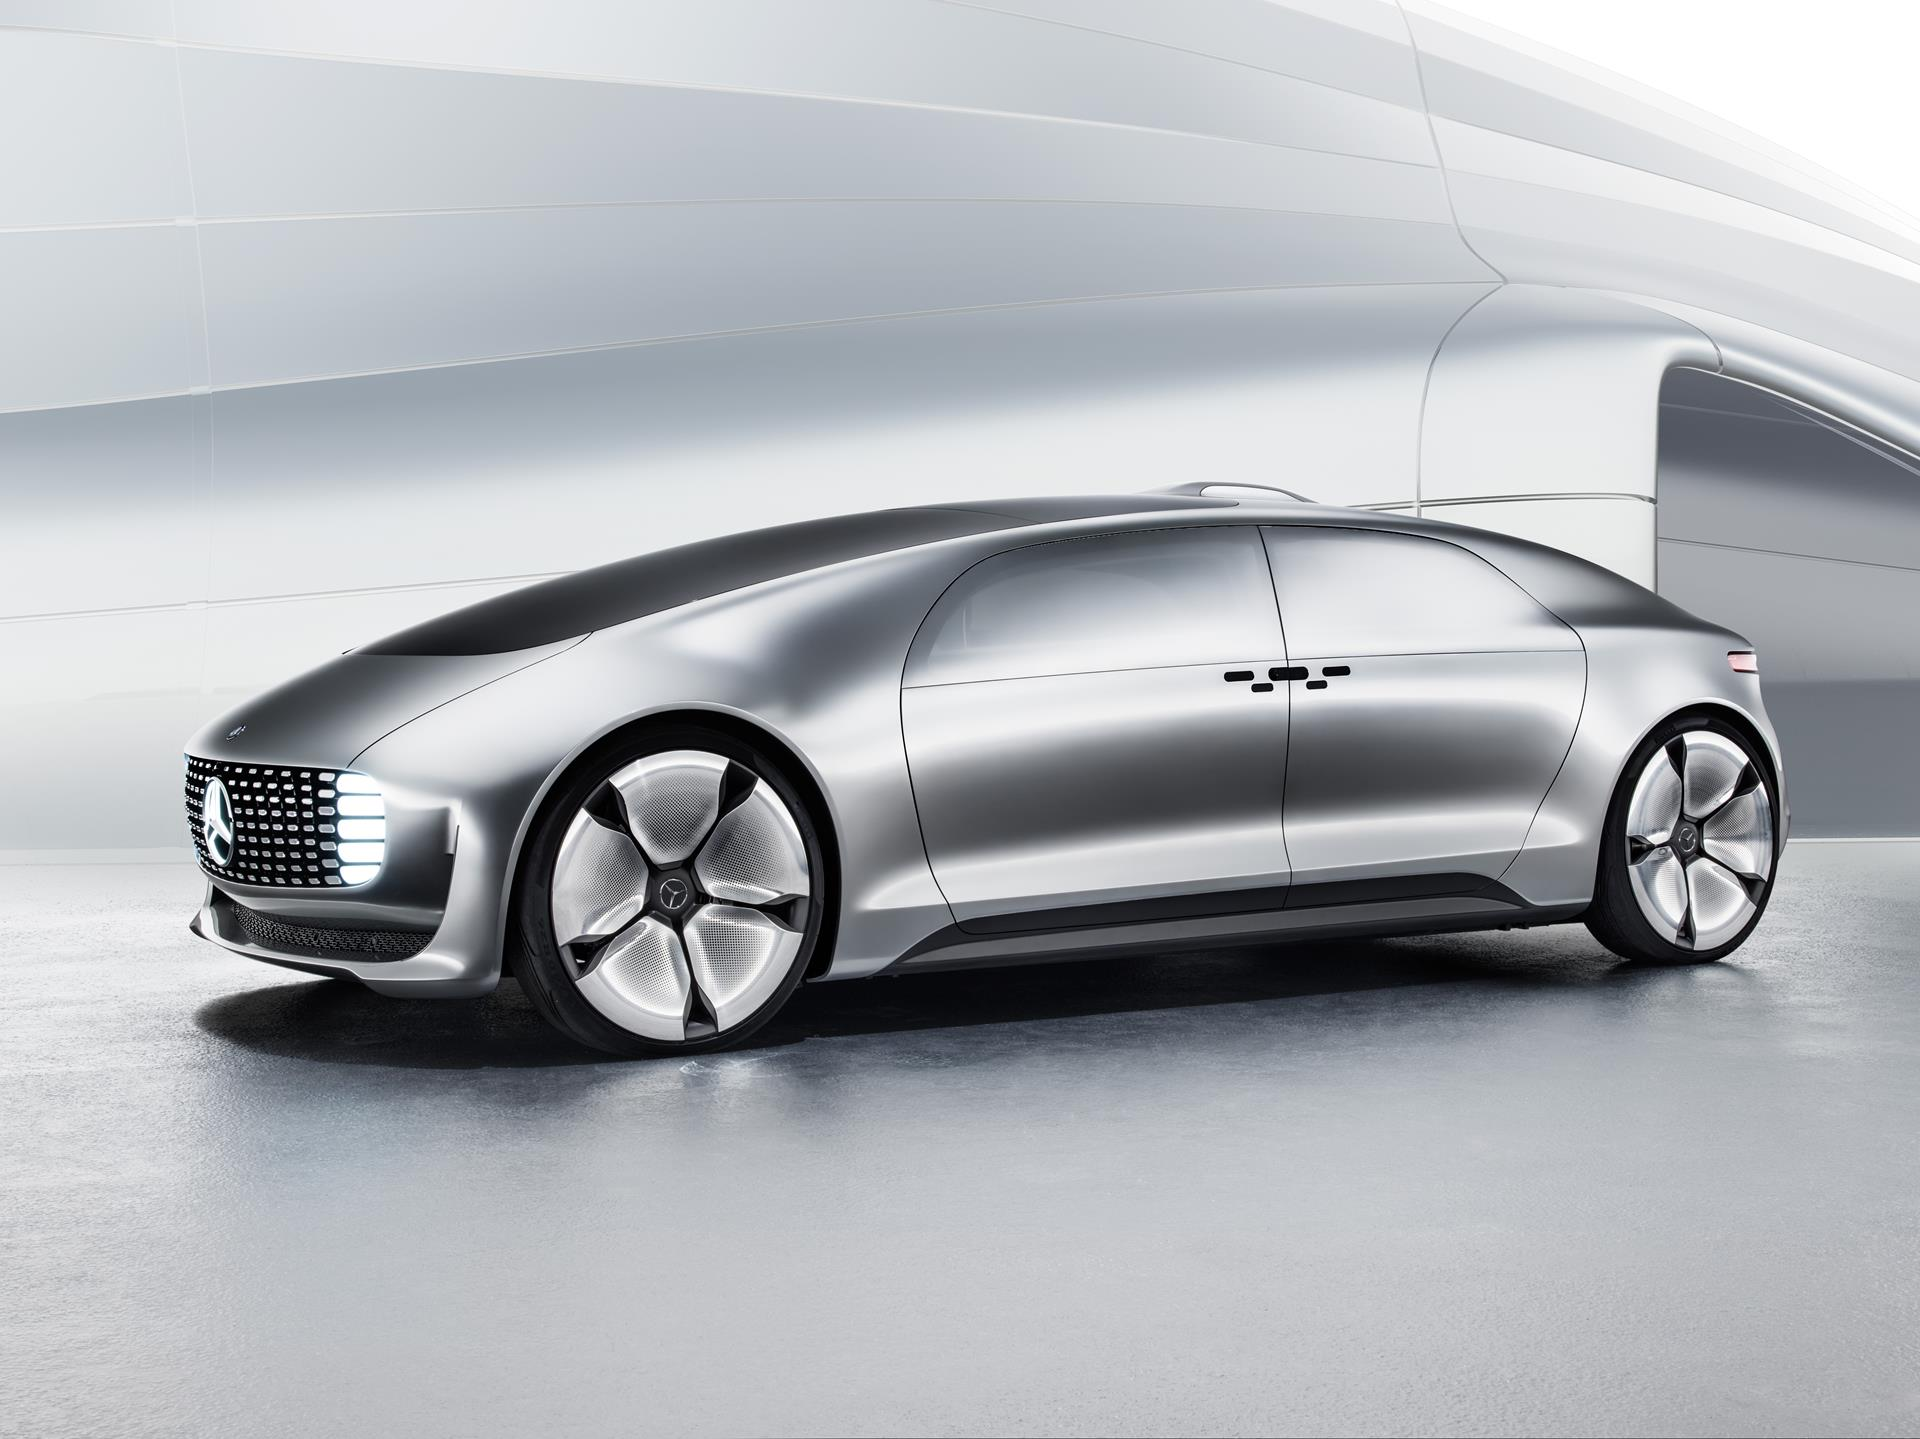 2015 mercedes benz f 015 luxury in motion concept. Black Bedroom Furniture Sets. Home Design Ideas